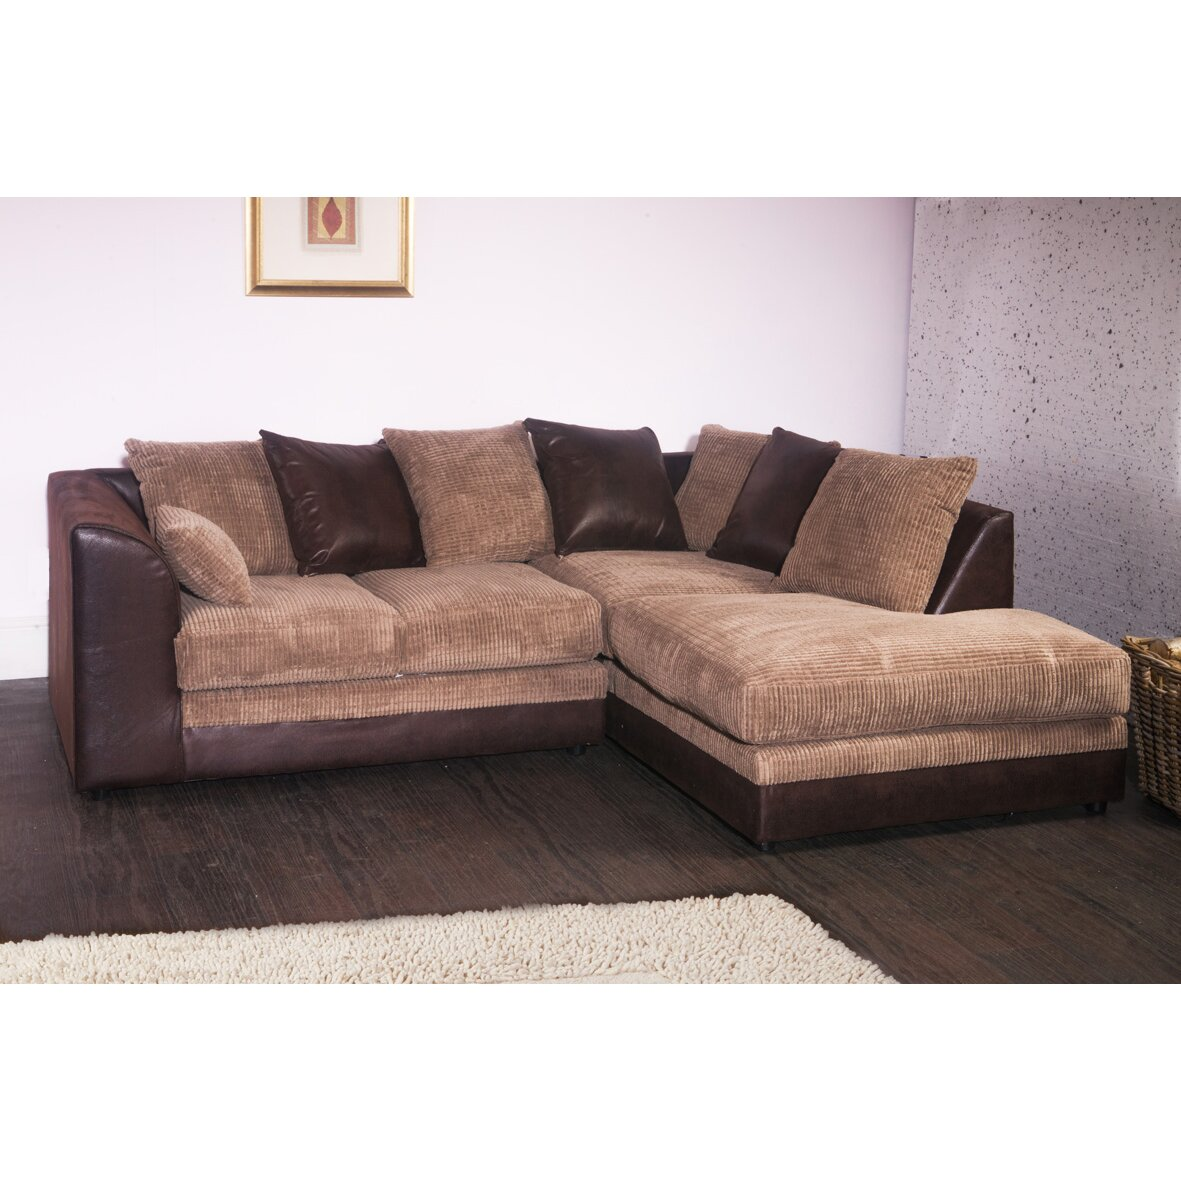 Home Haus Rabi Corner Sofa Reviews